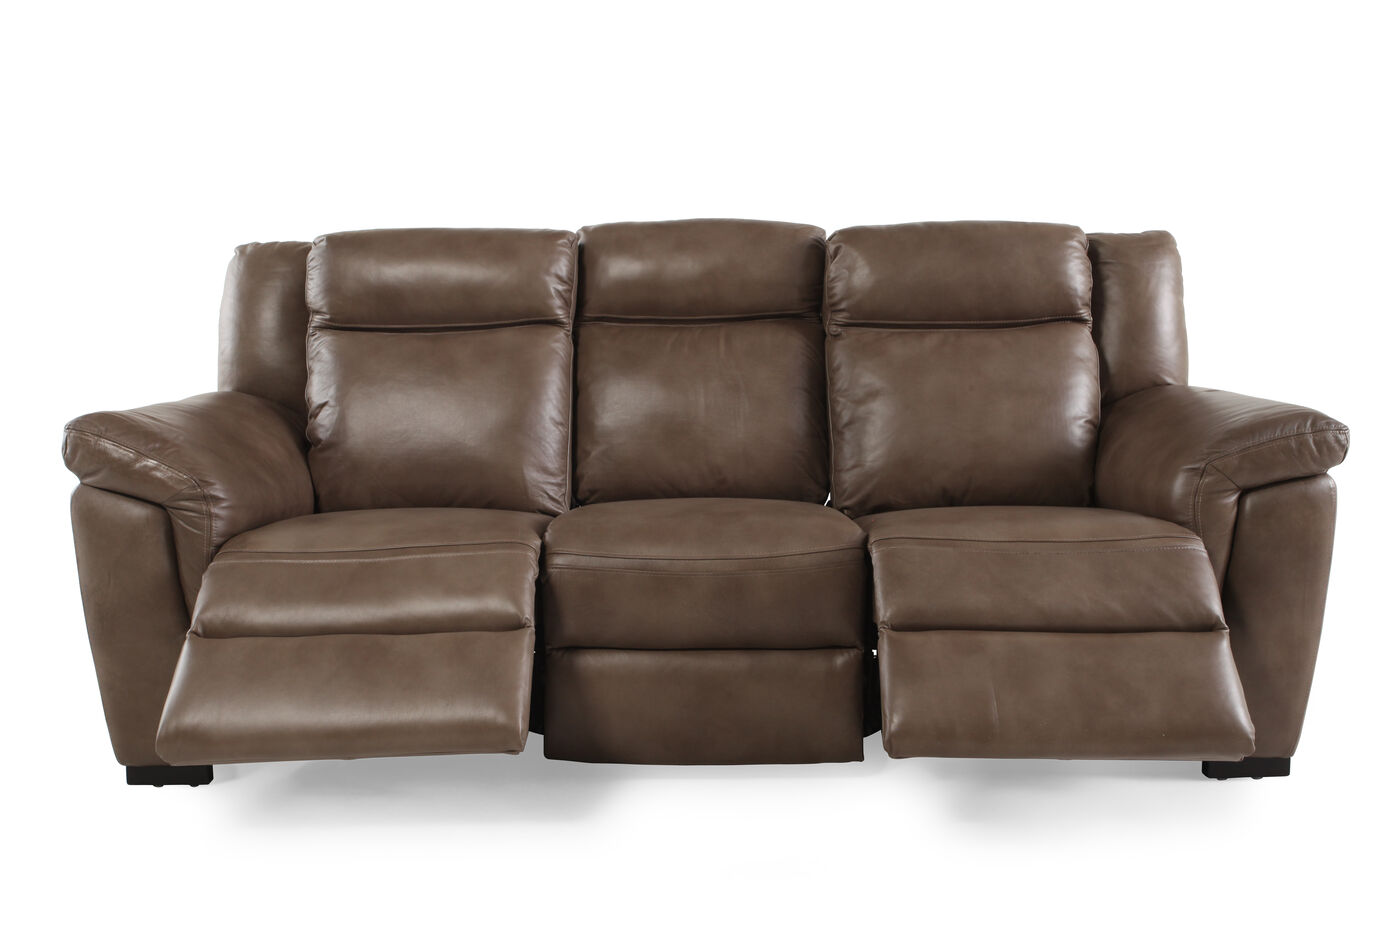 Contemporary 88quot power reclining sofa in nutmeg brown for Contemporary reclining sofas